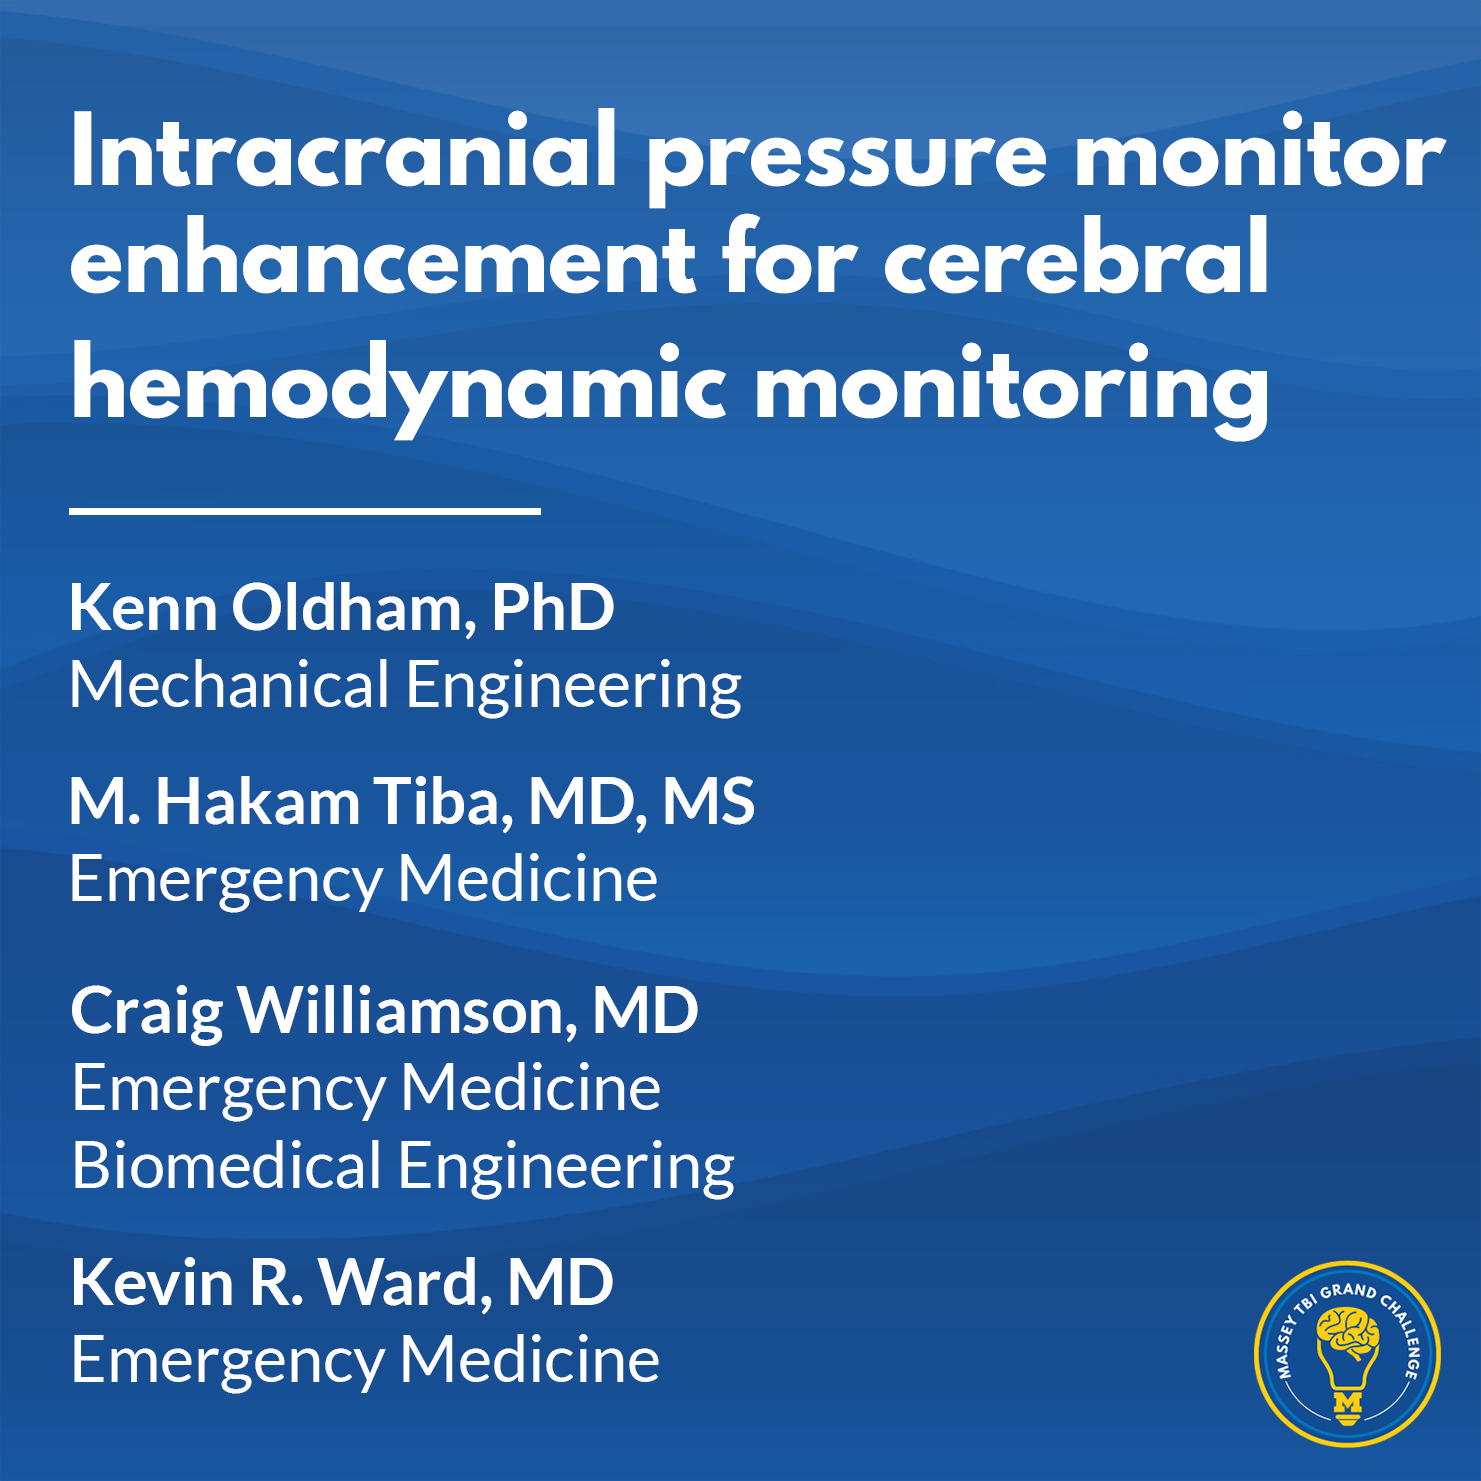 Research Thumbnail Template - Intracranial pressure monitor enhancement for cerebral hemodynamic monitoring - Oldham.png